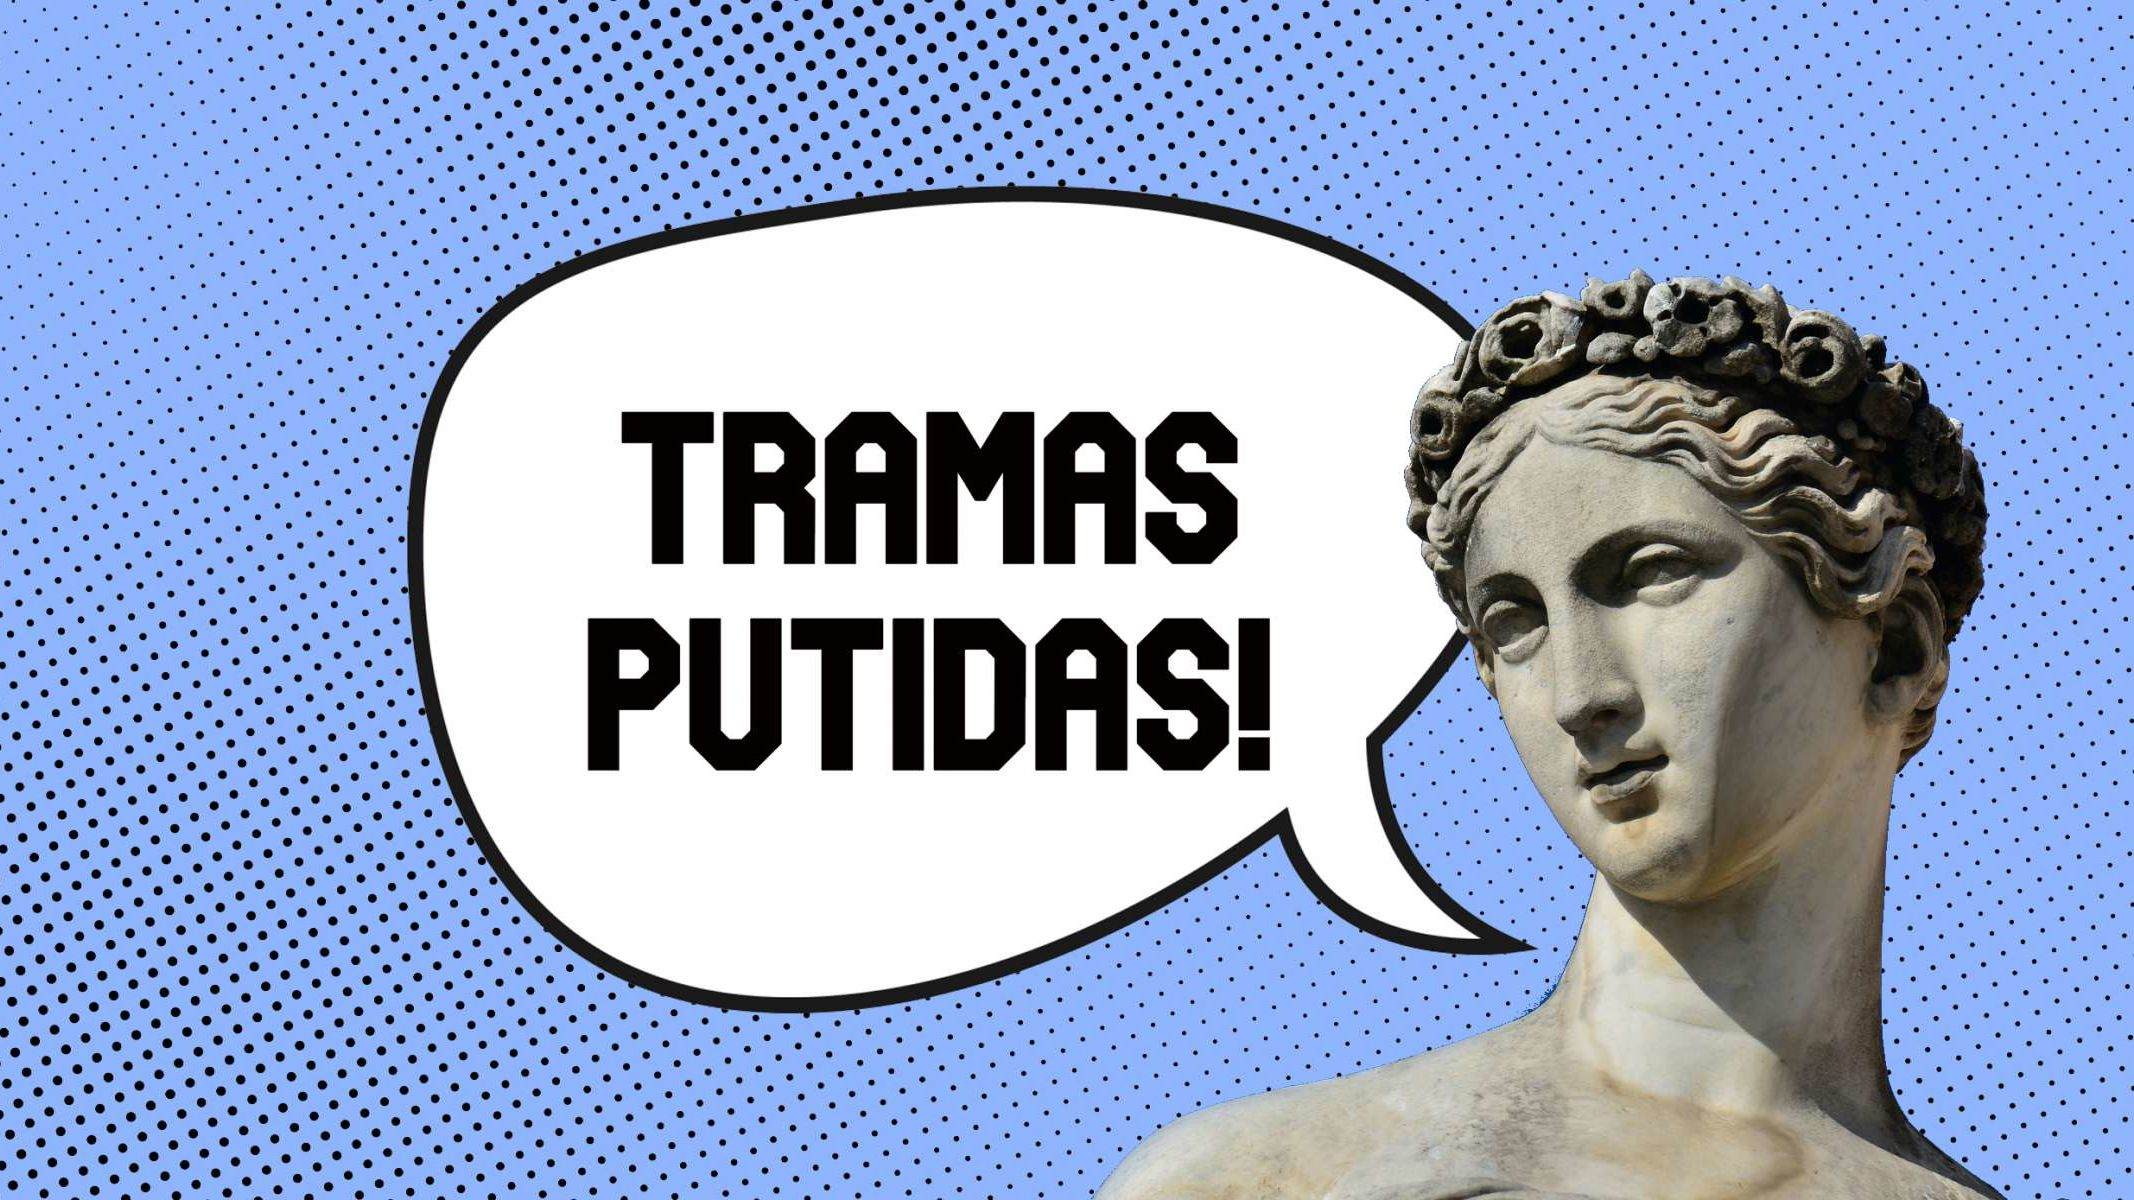 20 Latin Insults You Should Know